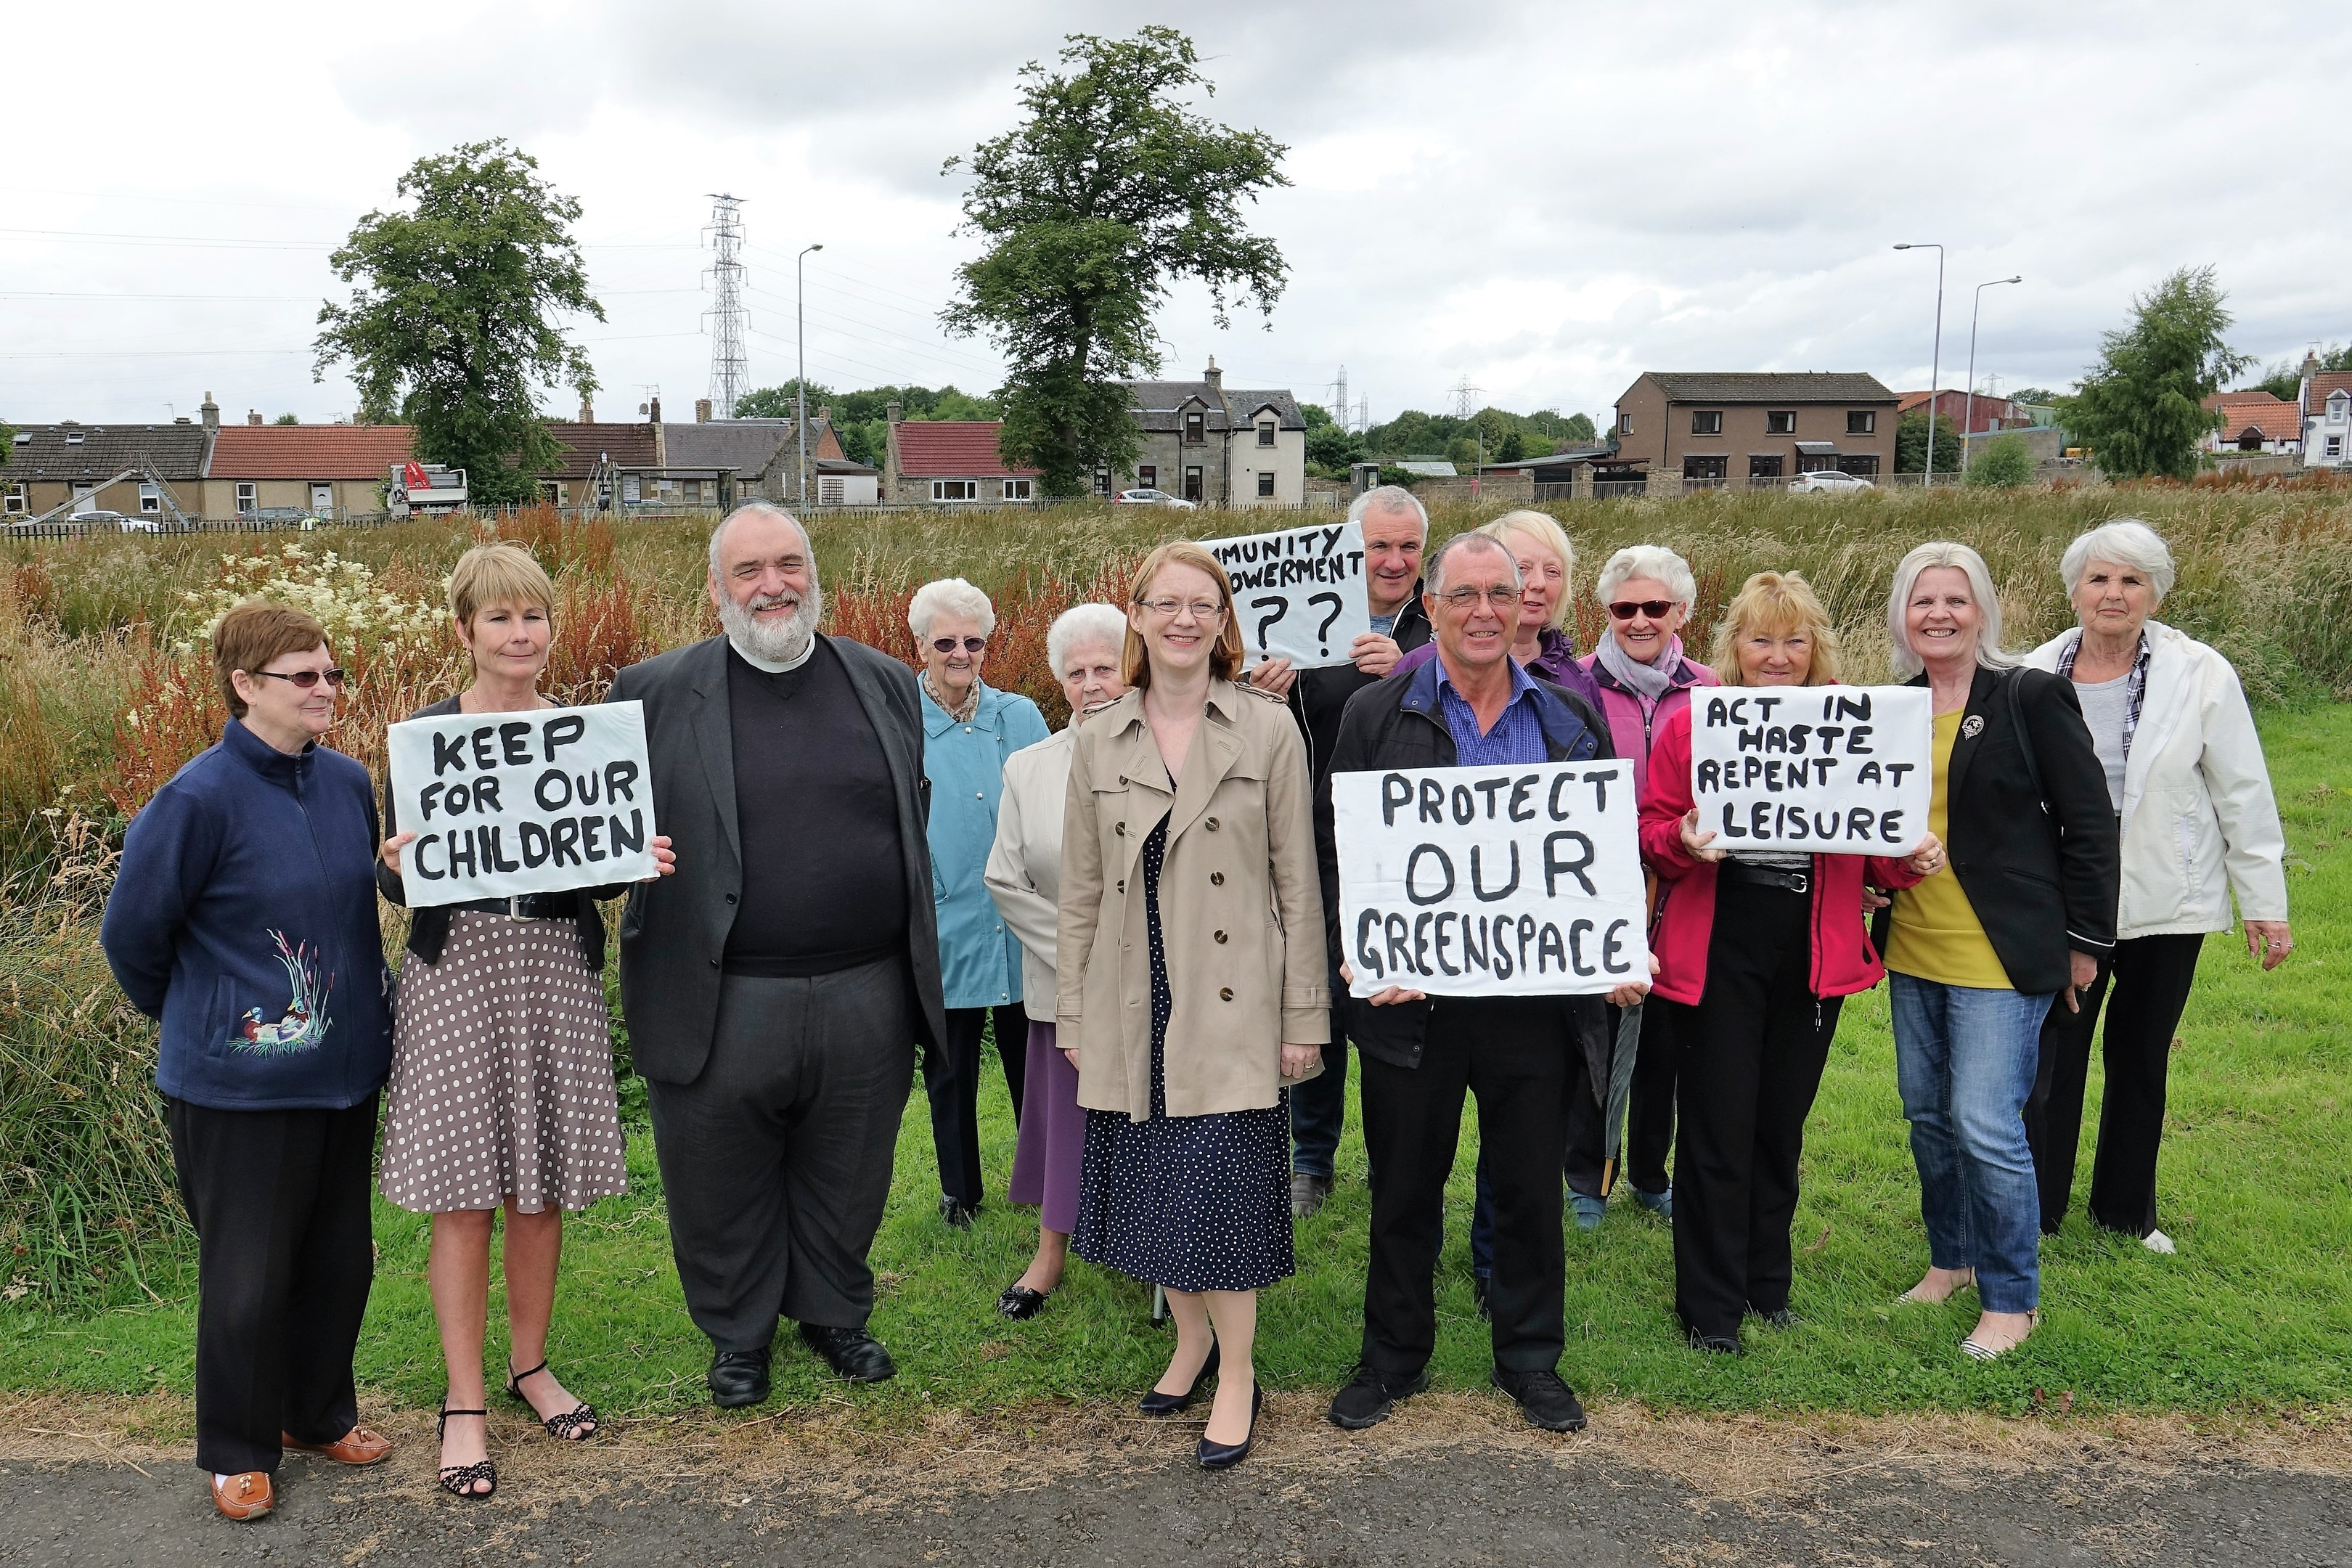 Members of the local community have been angered by Fife Council's plans.